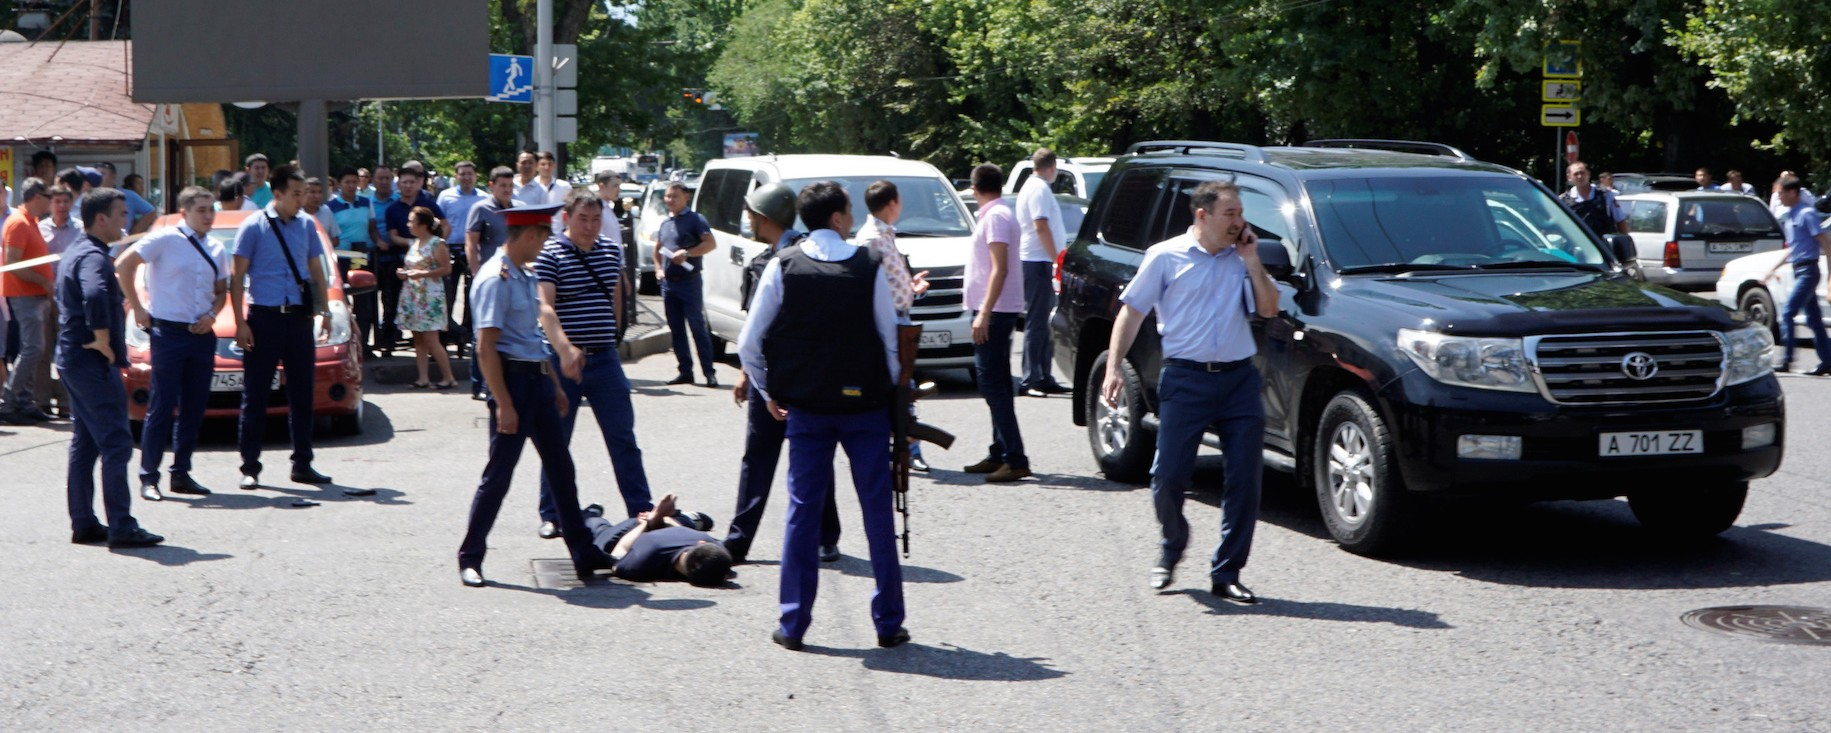 Islamist militants suspected in shootout targeting police in Kazakhstan